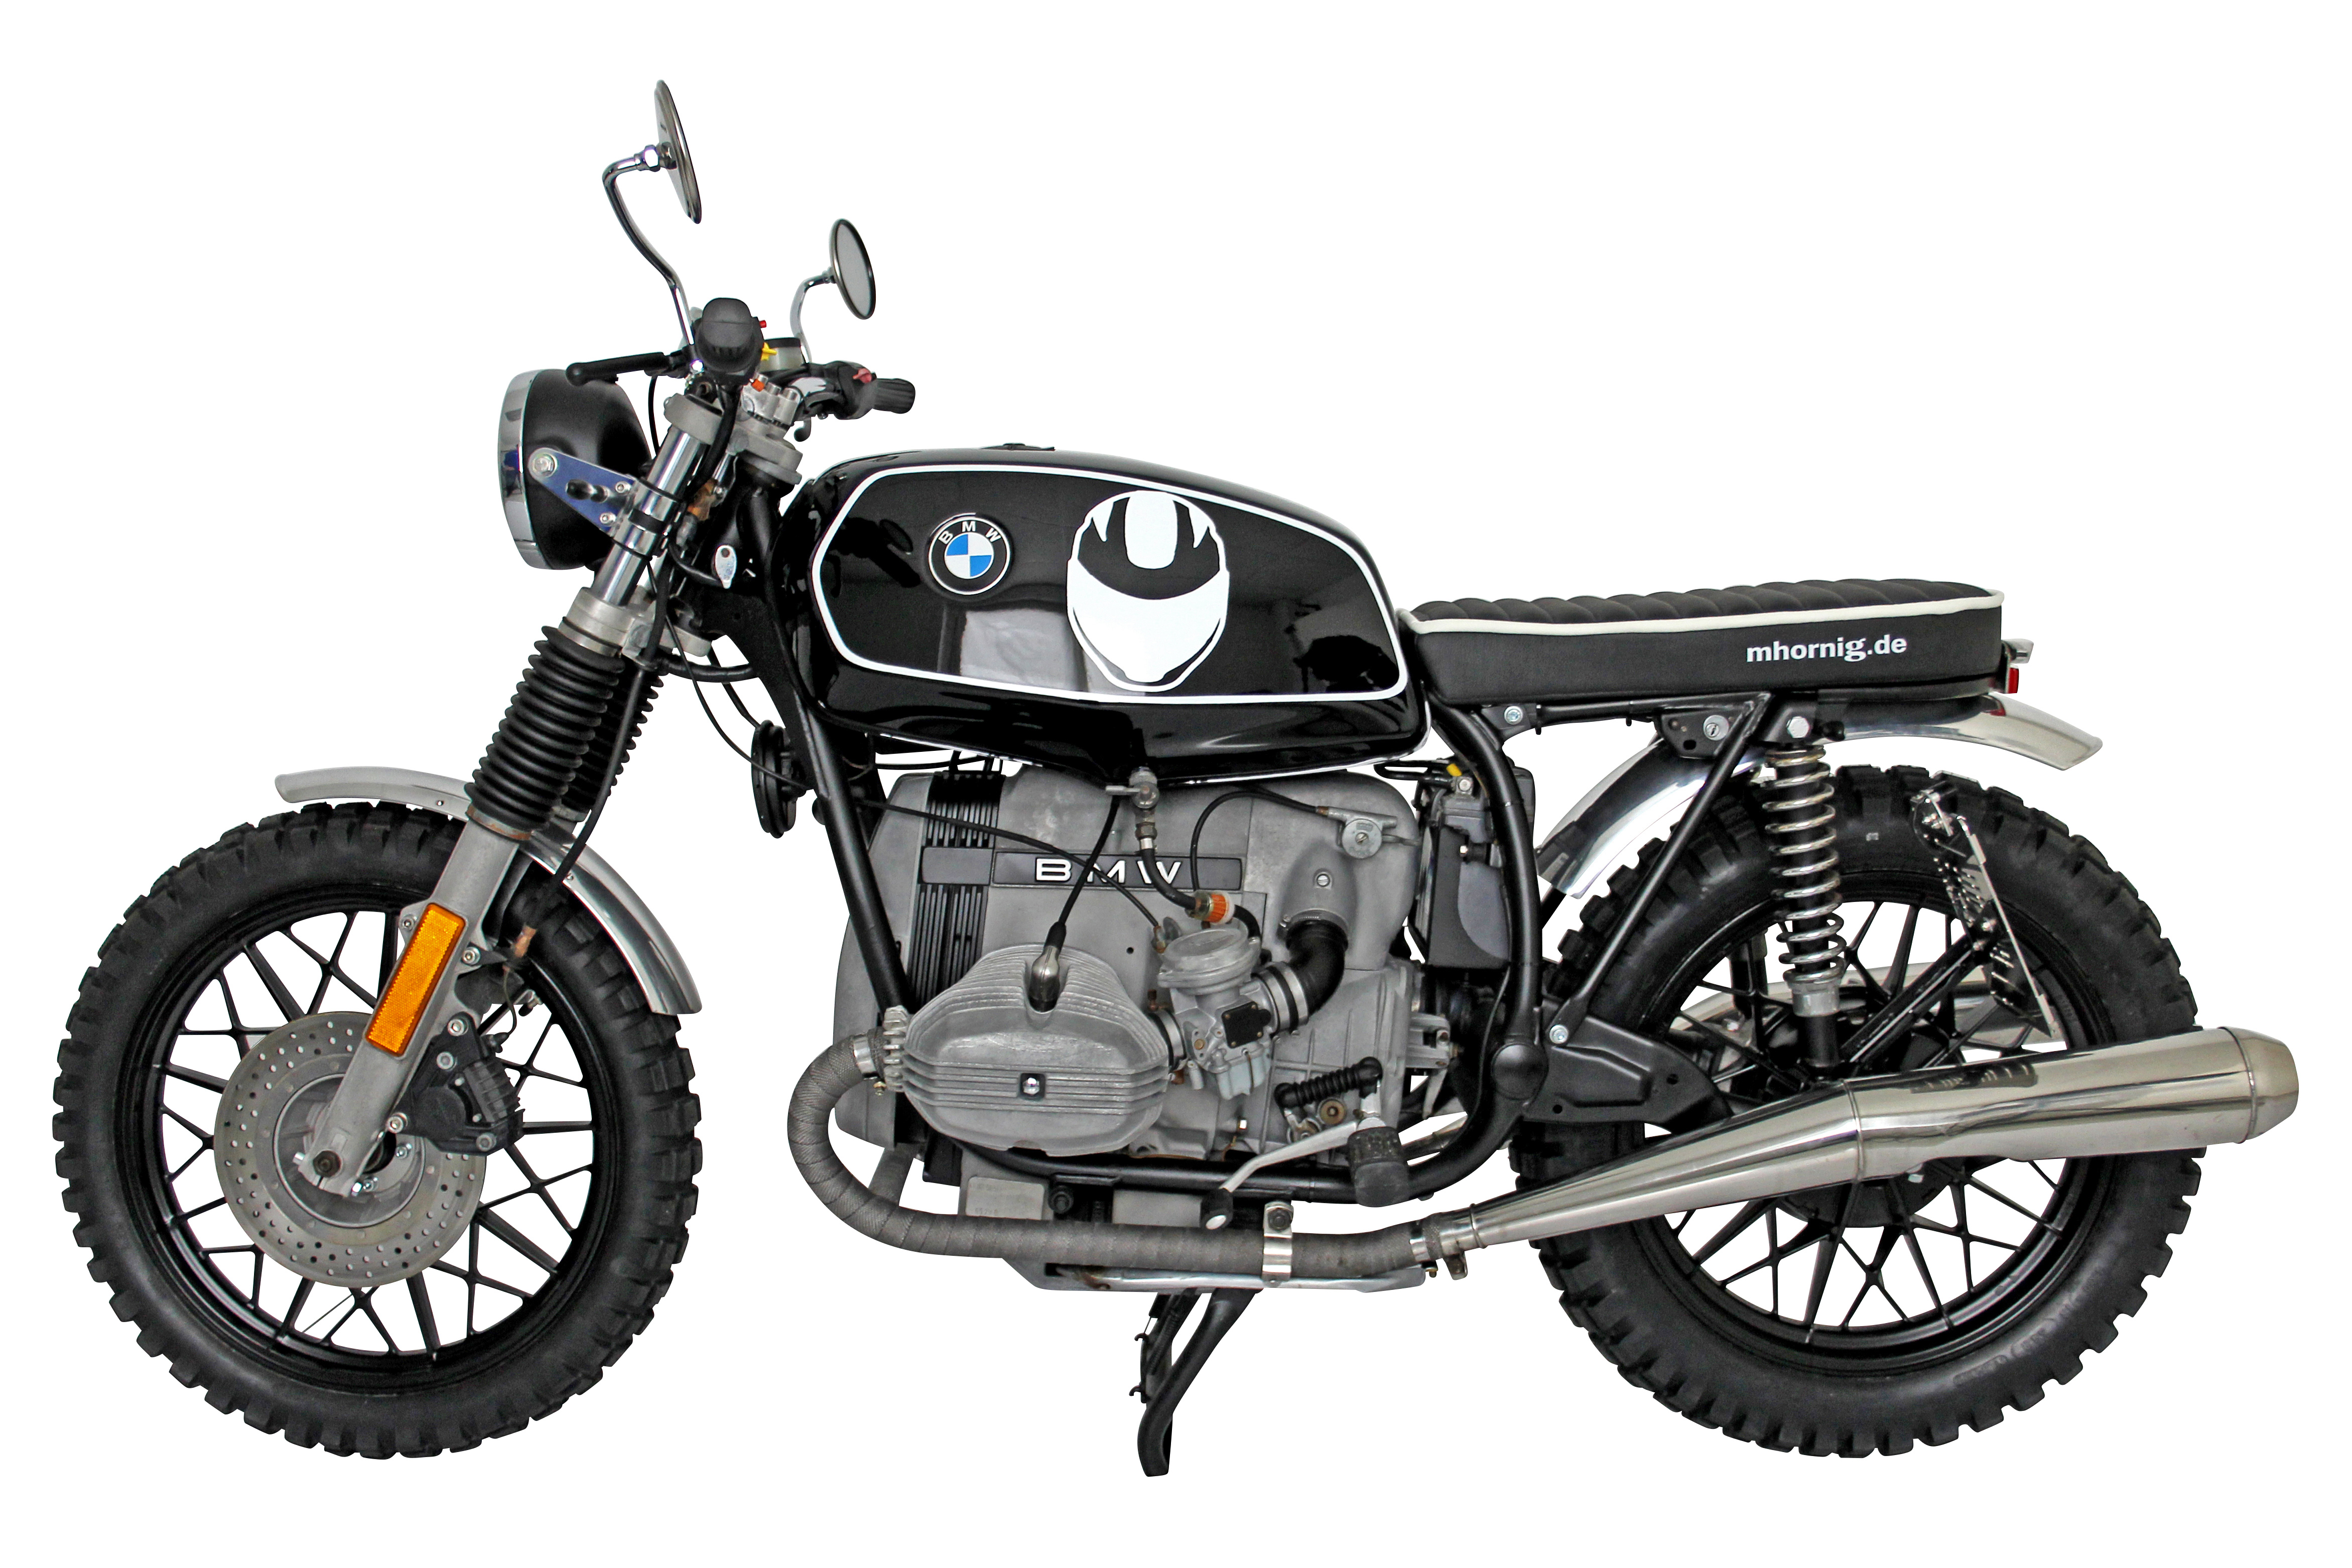 bmw r45 scrambler conversion by hornig t v approved and without frills motorcycle accessory. Black Bedroom Furniture Sets. Home Design Ideas